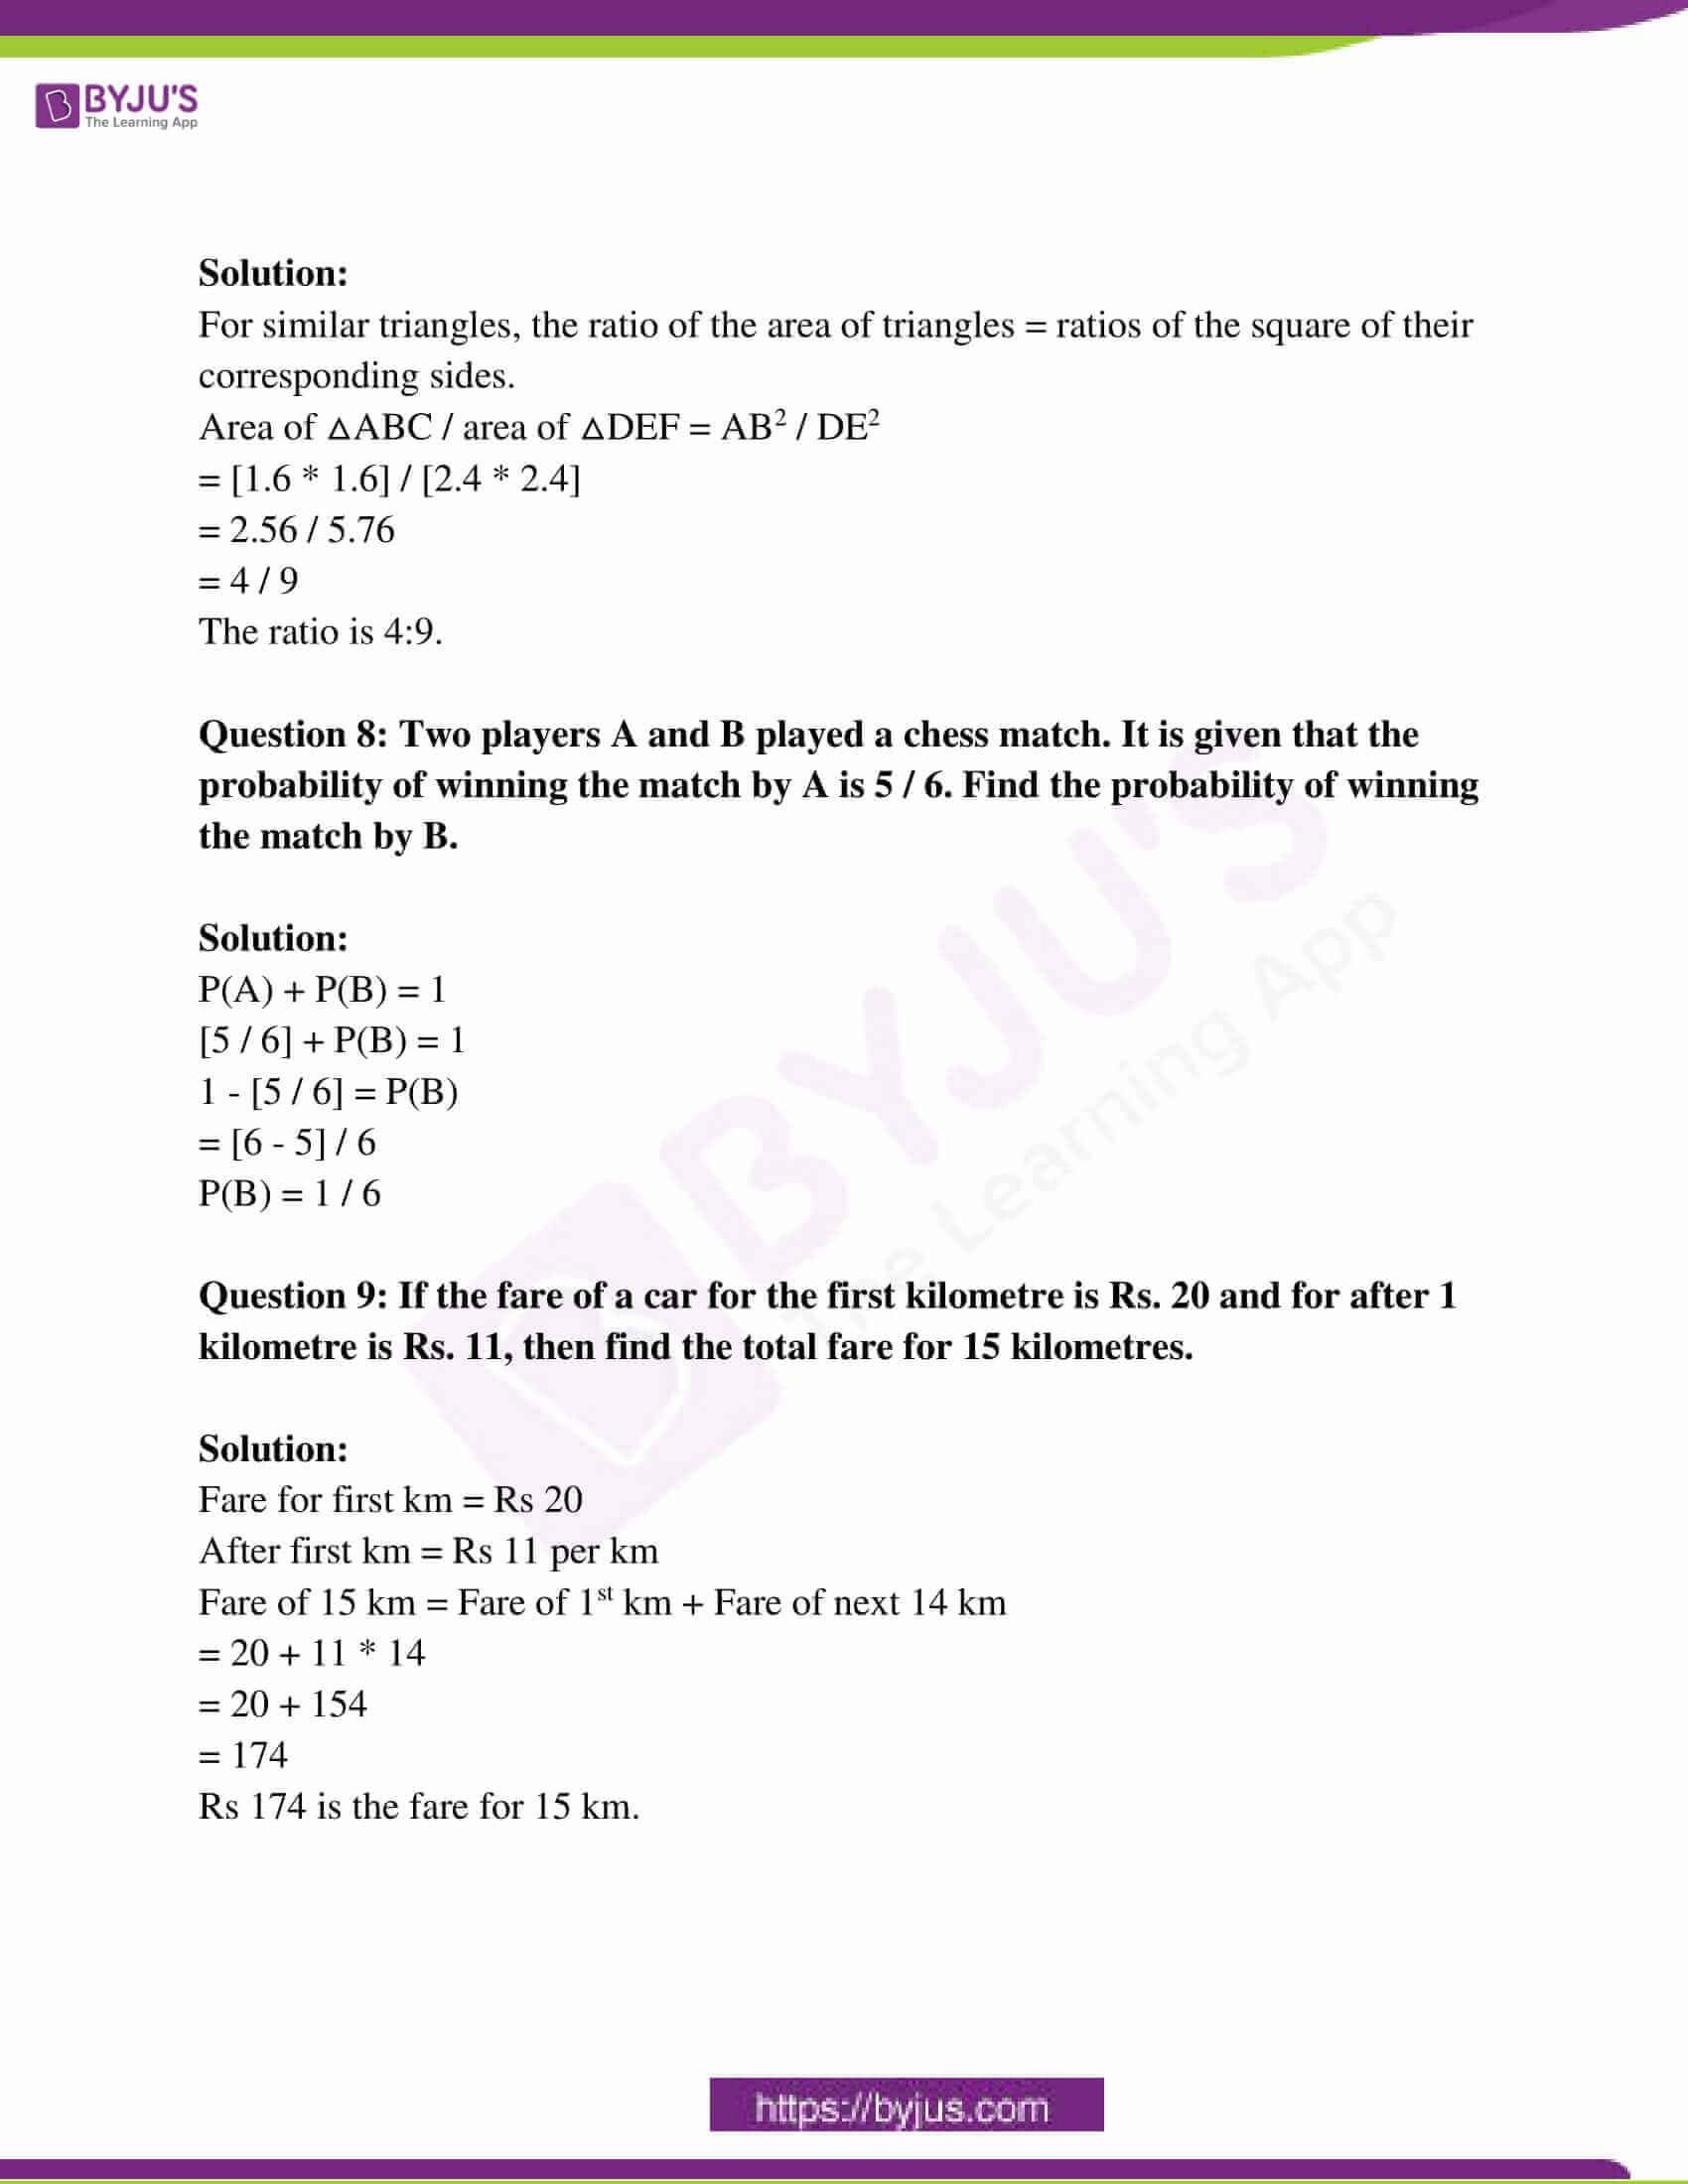 rajasthan board class 10 examination question paper sol march 2019 03